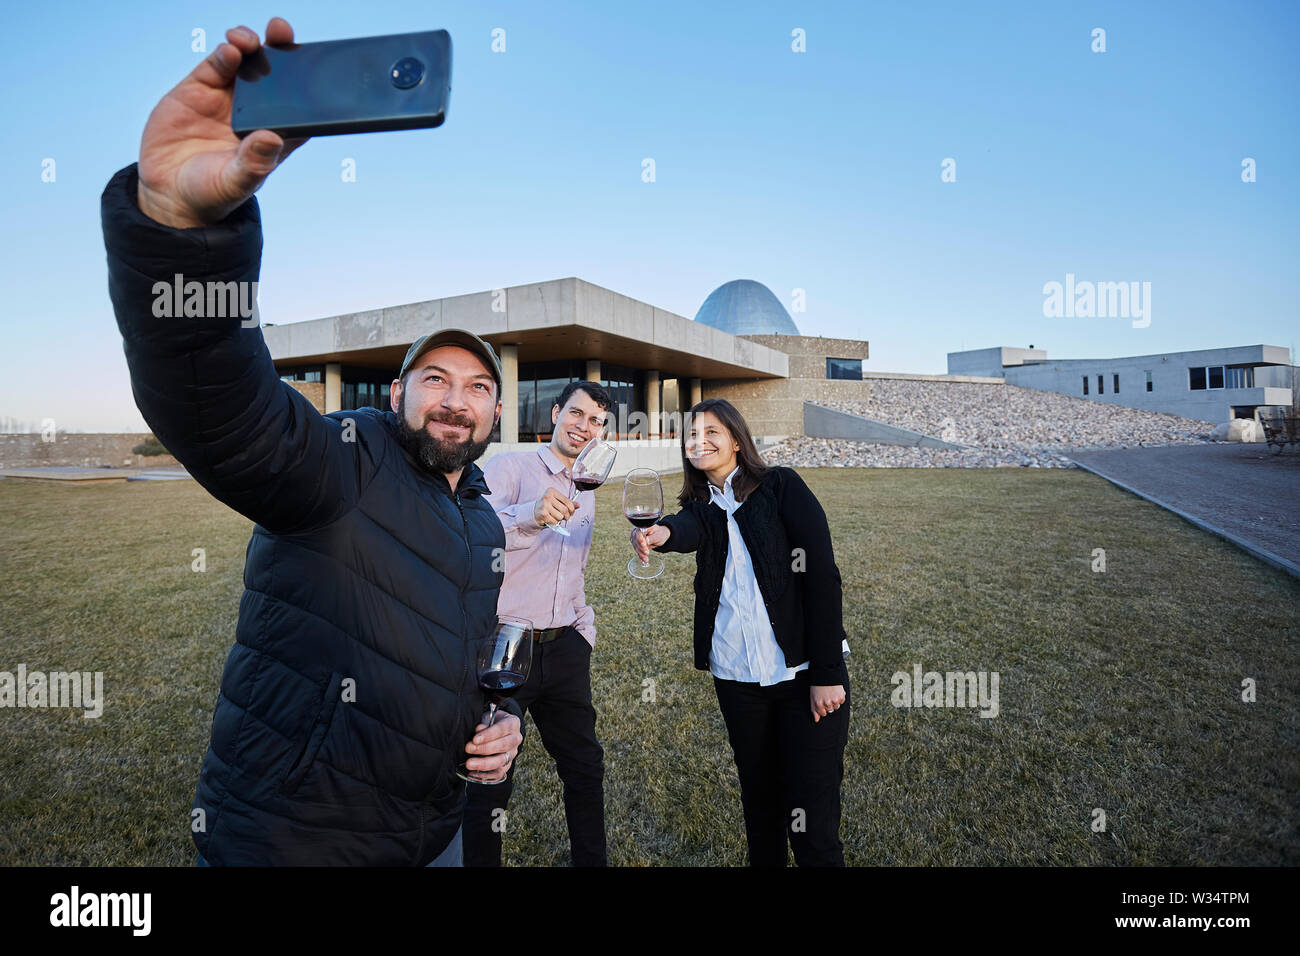 11 July 2019, Argentina, San Carlos: Visitors make a selfie with the building of Piedra Infinita in the background. The Argentinian winery Piedra Infinita of the brand Zuccardi, was awarded by the World's Best Vineyards Academy as the best winery and winery in the world. This award recognizes the best 50 wineries in the world, based on the experience offered to the visitor. Photo: Marcelo Aguilar/dpa - Stock Image